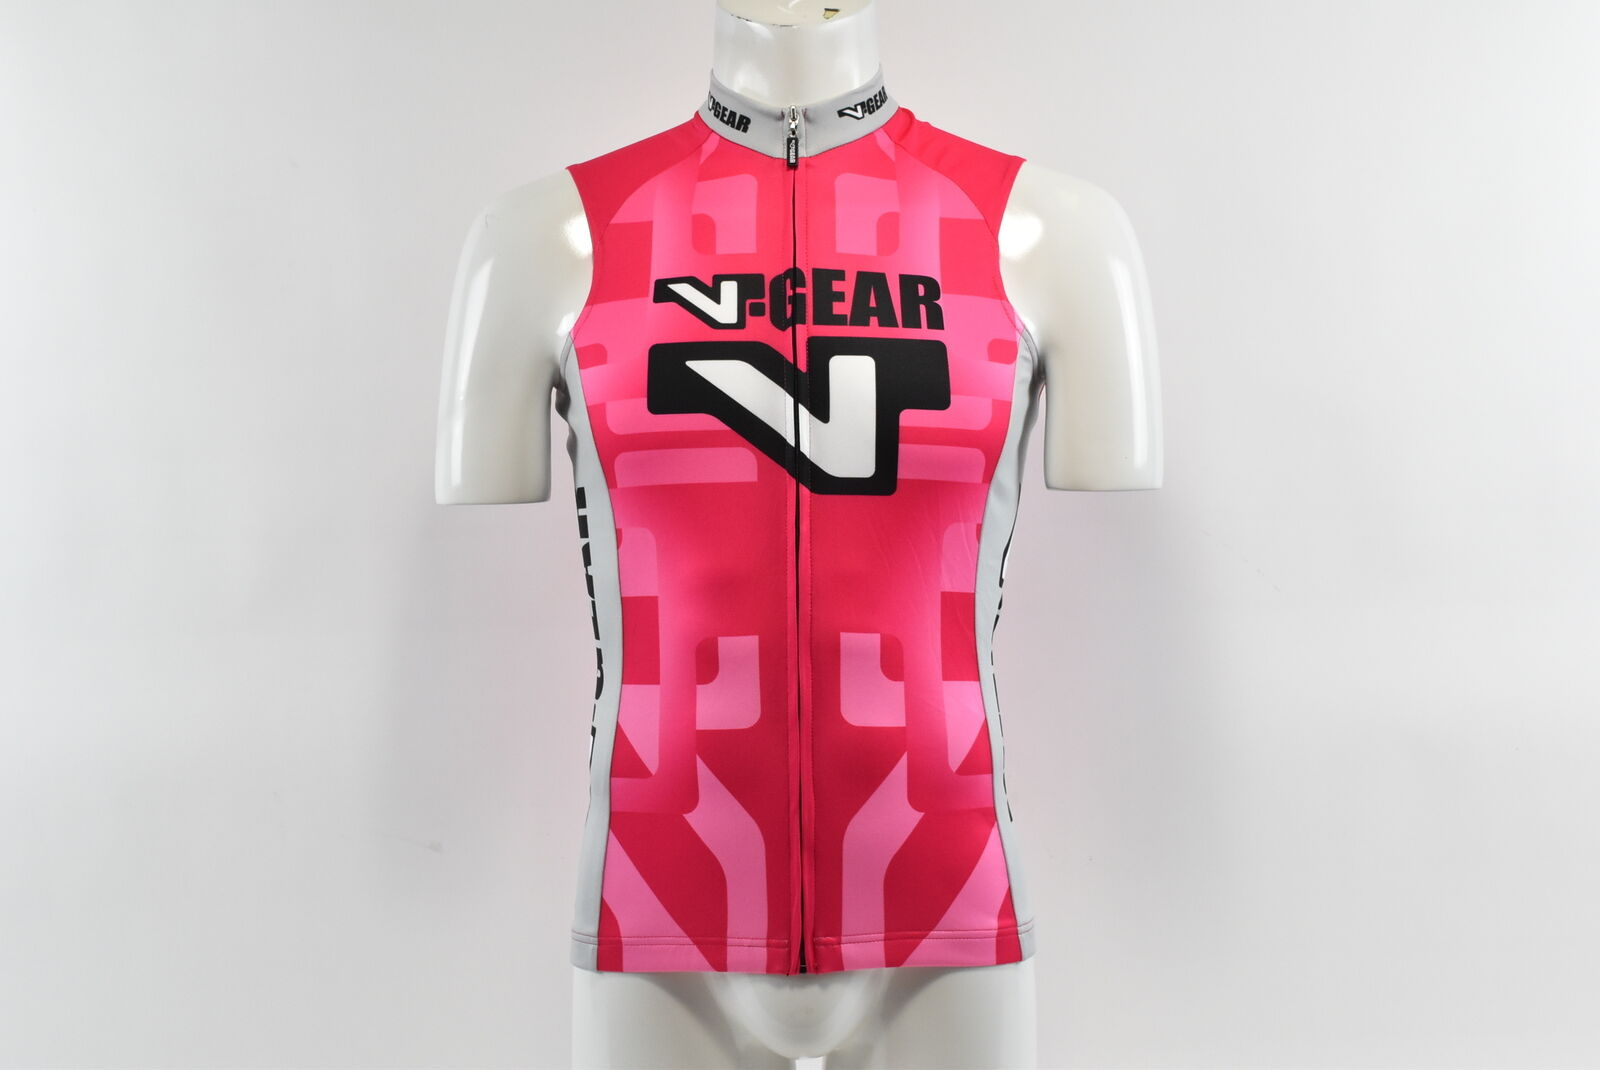 Verge V-Gear Women's S L Cycling Jersey, Pink, Size Large, Brand New